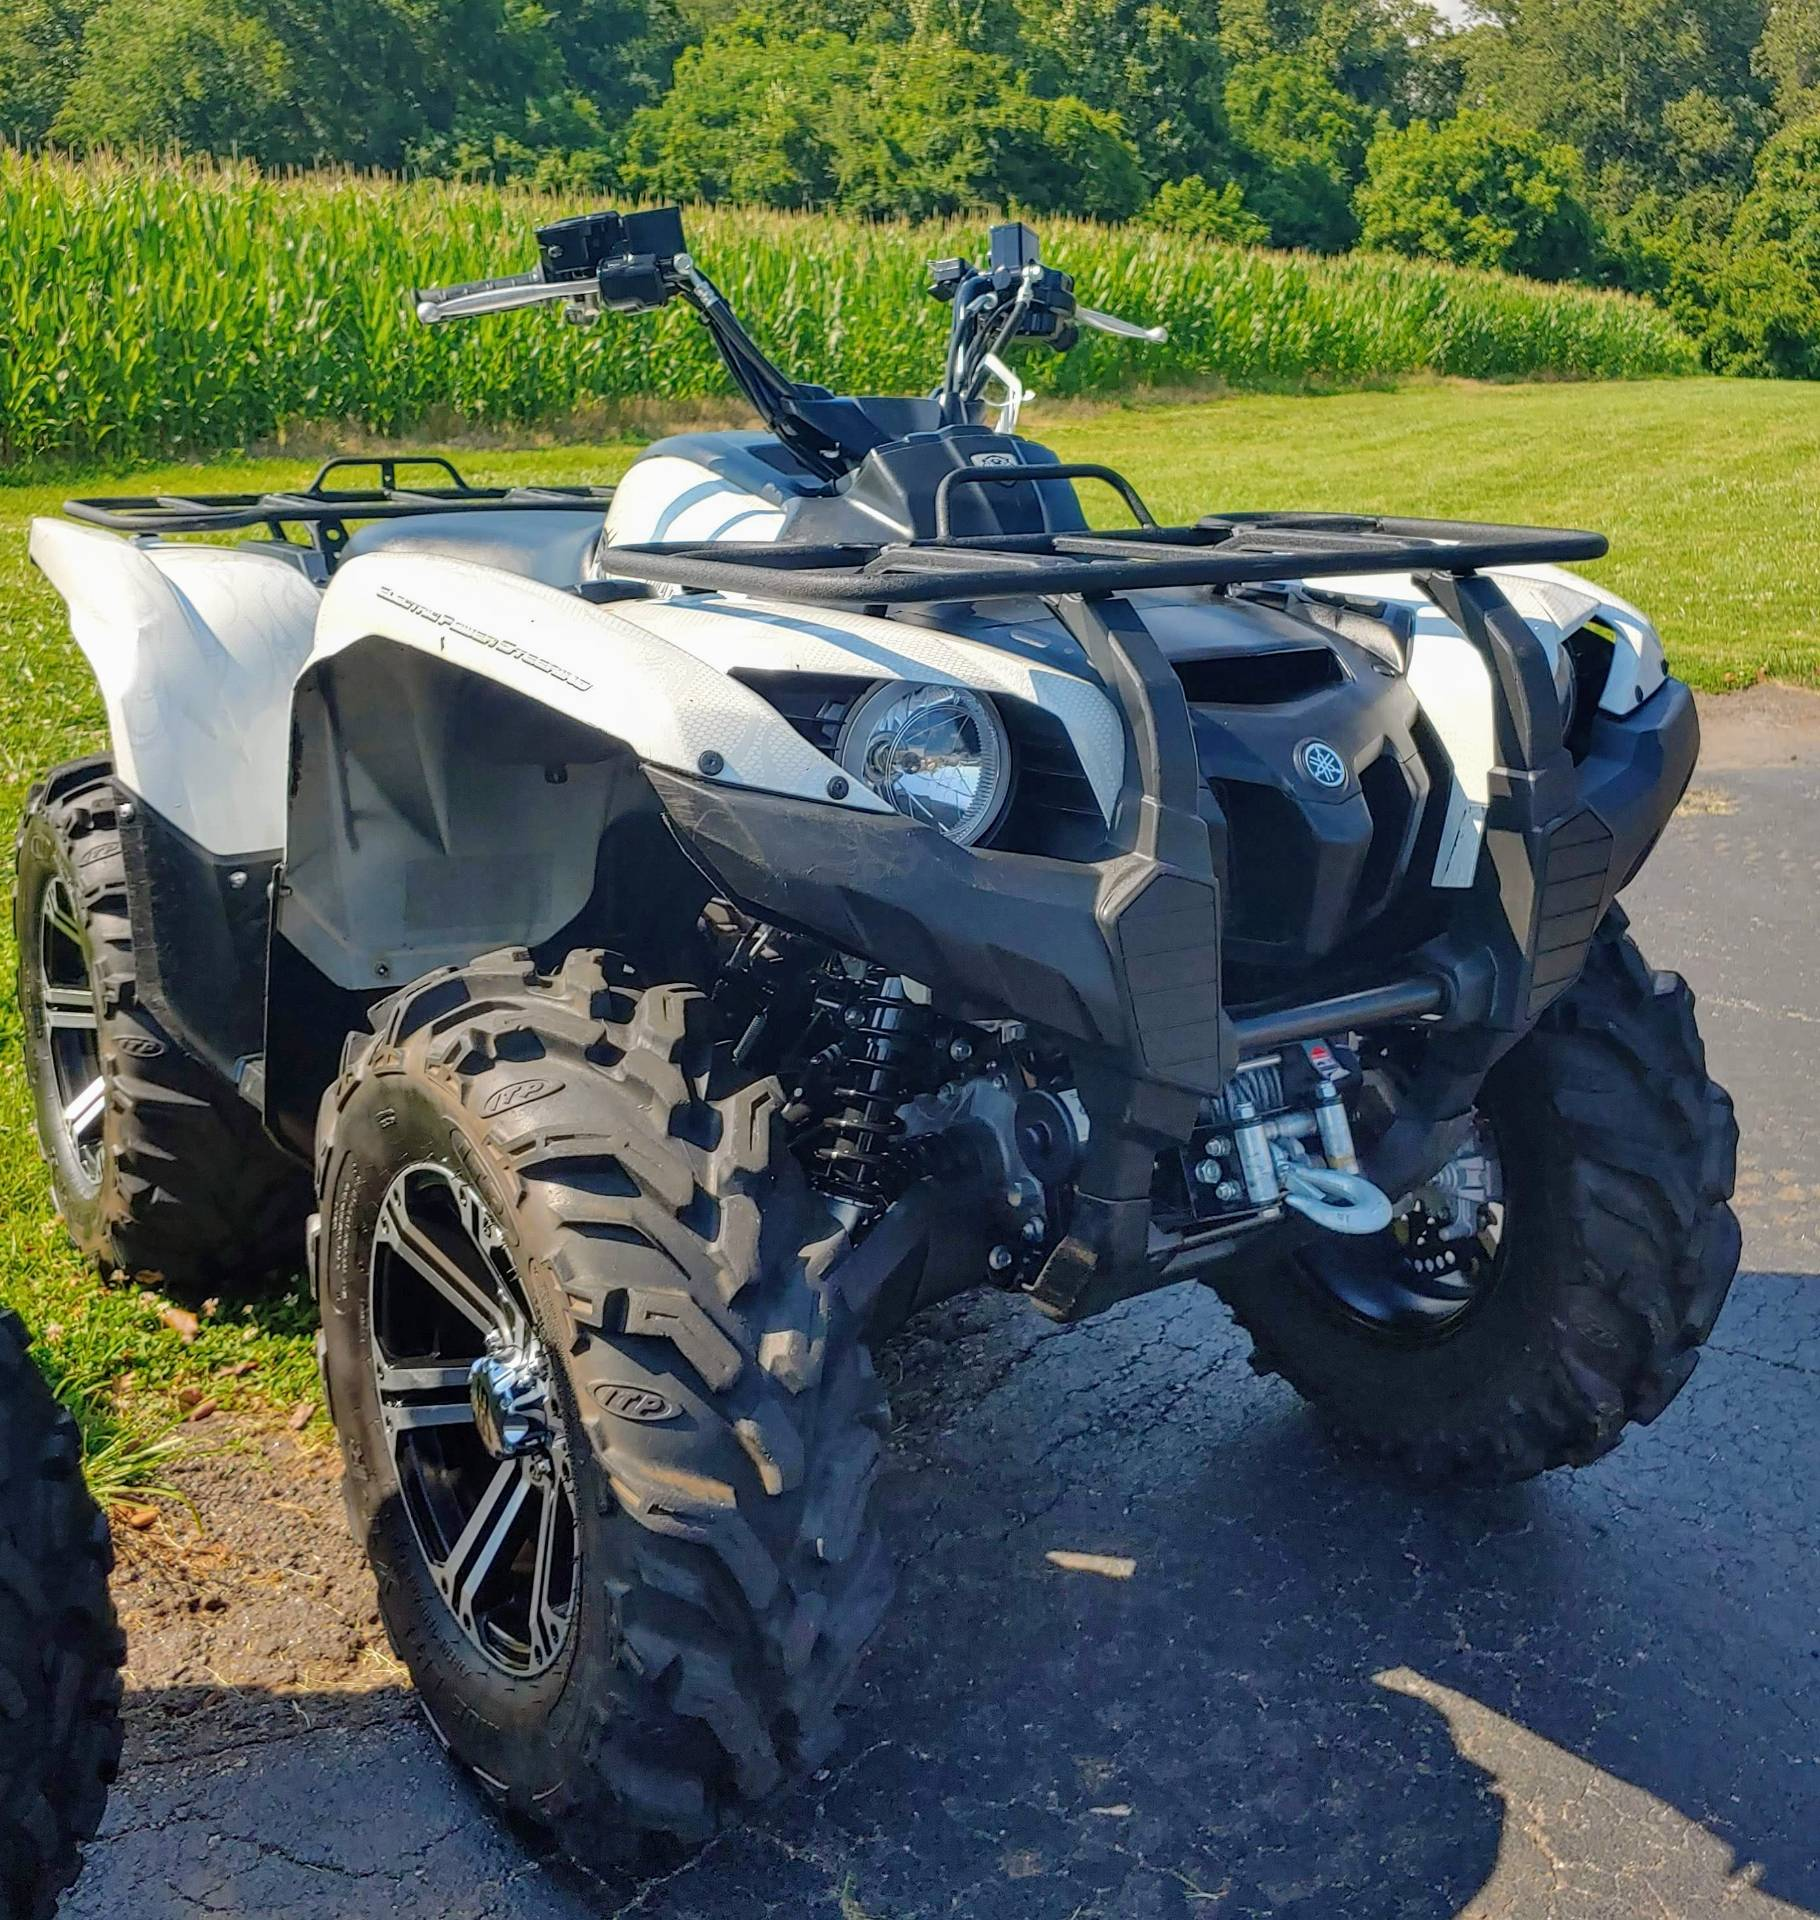 2010 Yamaha Grizzly 700 FI Auto. 4x4 EPS Special Edition in Statesville, North Carolina - Photo 3